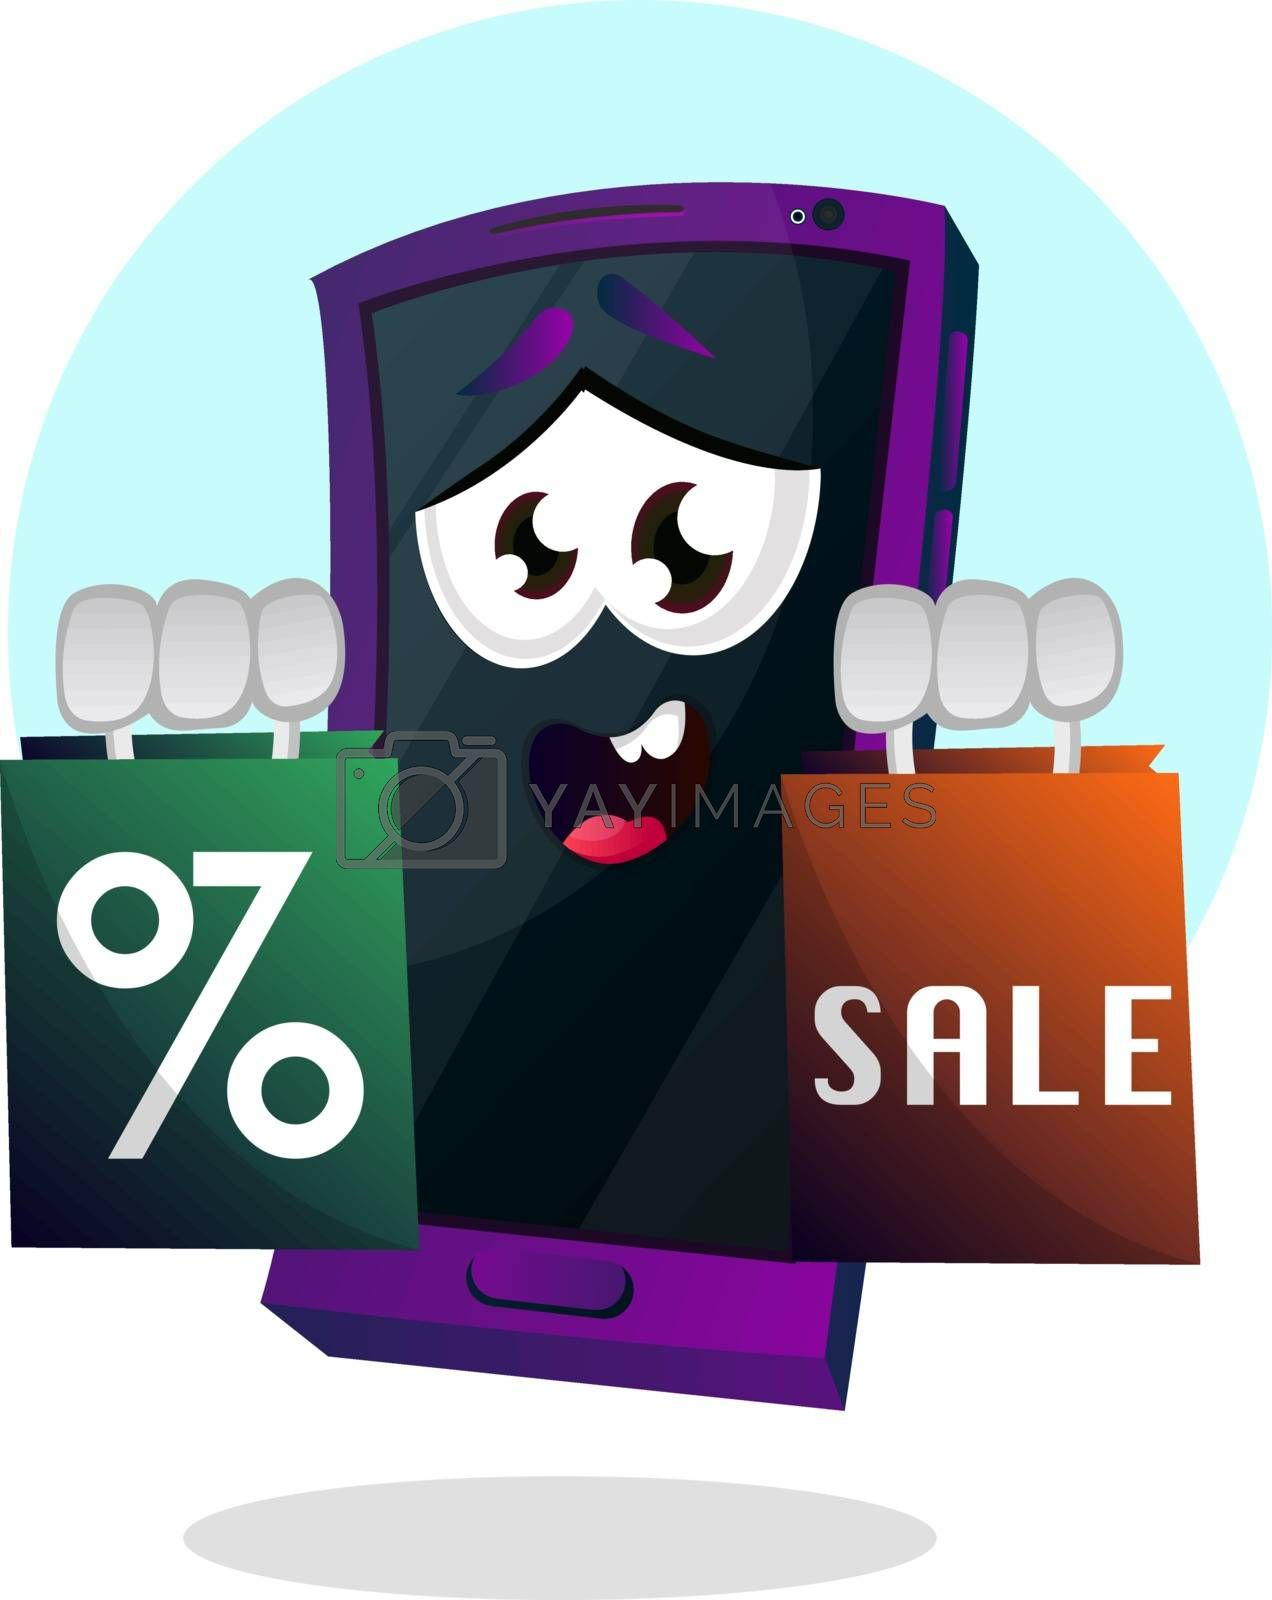 Royalty free image of Mobile emoji holding a sale sign illustration vector on white ba by Morphart